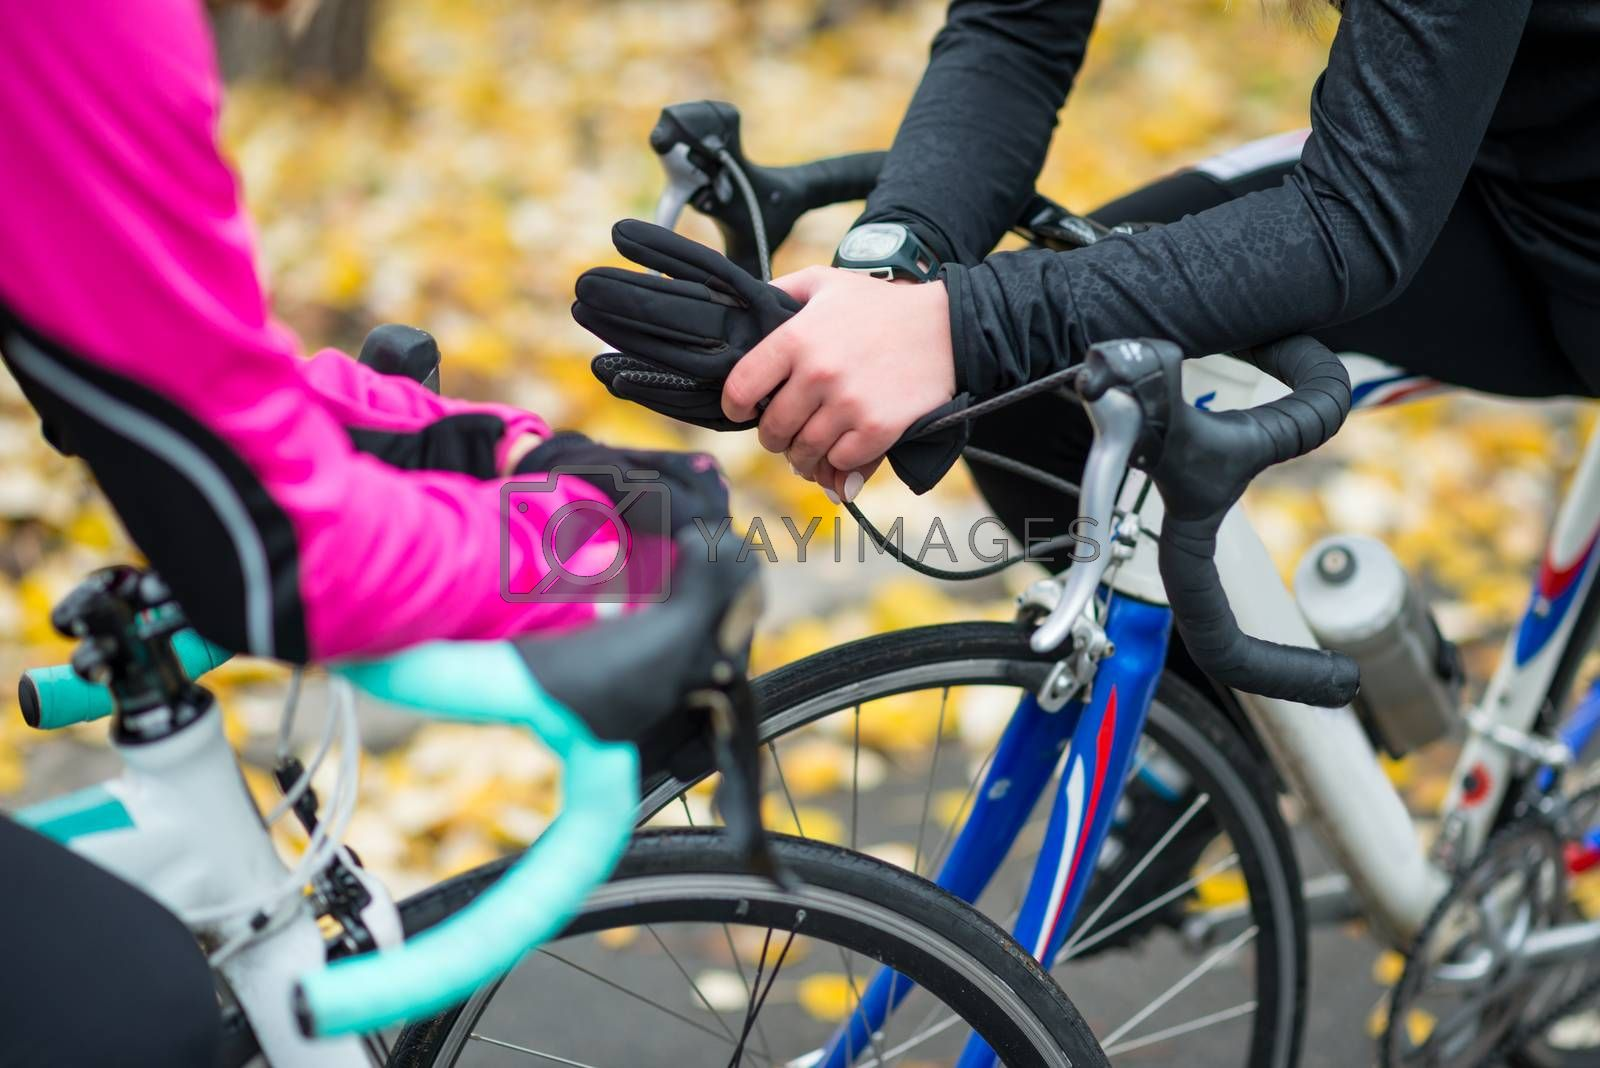 Two Young Female Cyclists with Road Bicycles Resting in the Park in Cold Autumn Day. Healthy Lifestyle. by maxpro